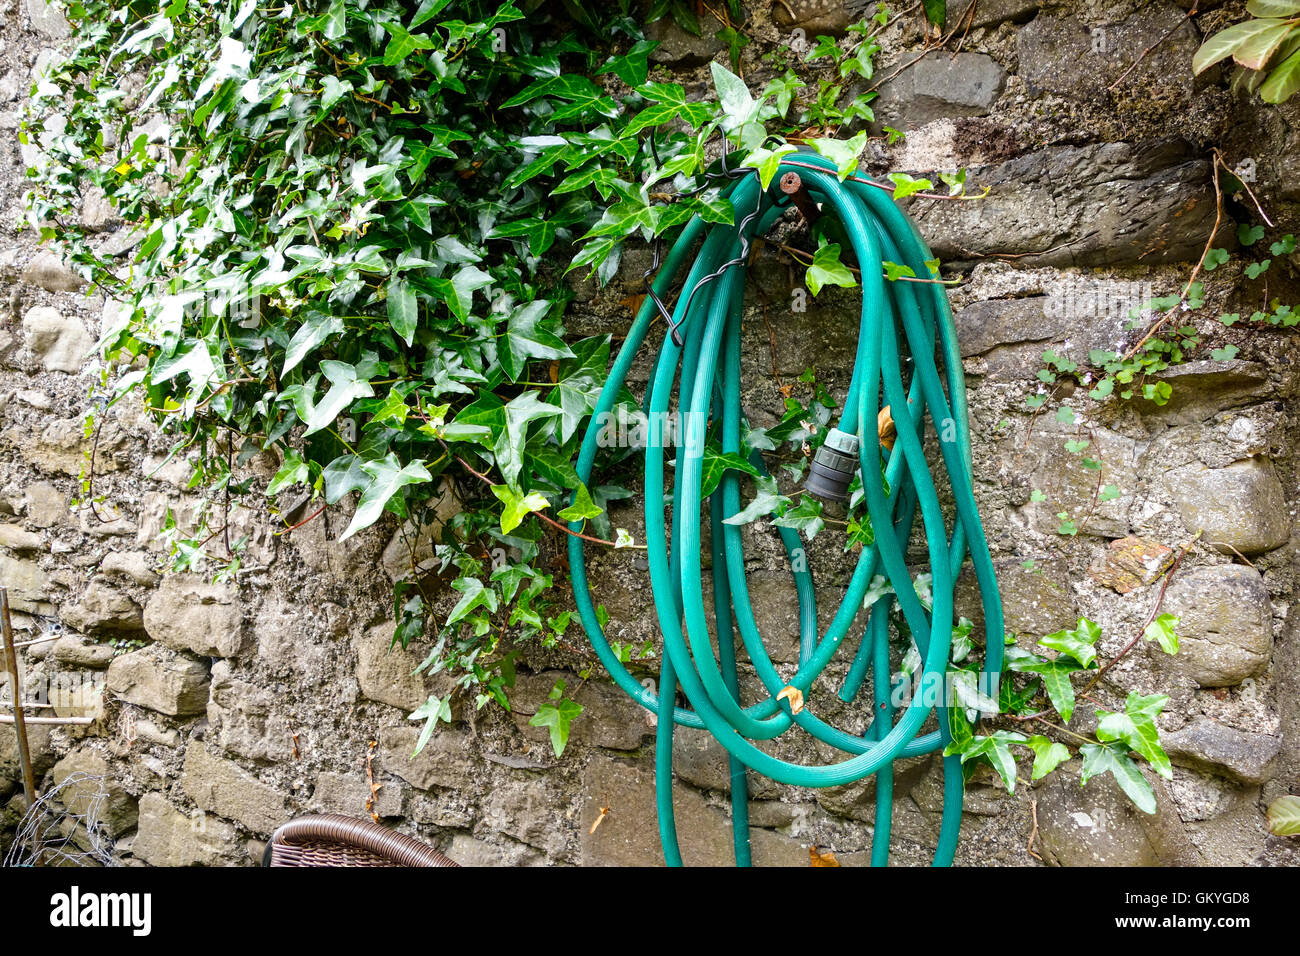 A coil of green hosepipe hanging on an old ivy covered wall - Stock Image